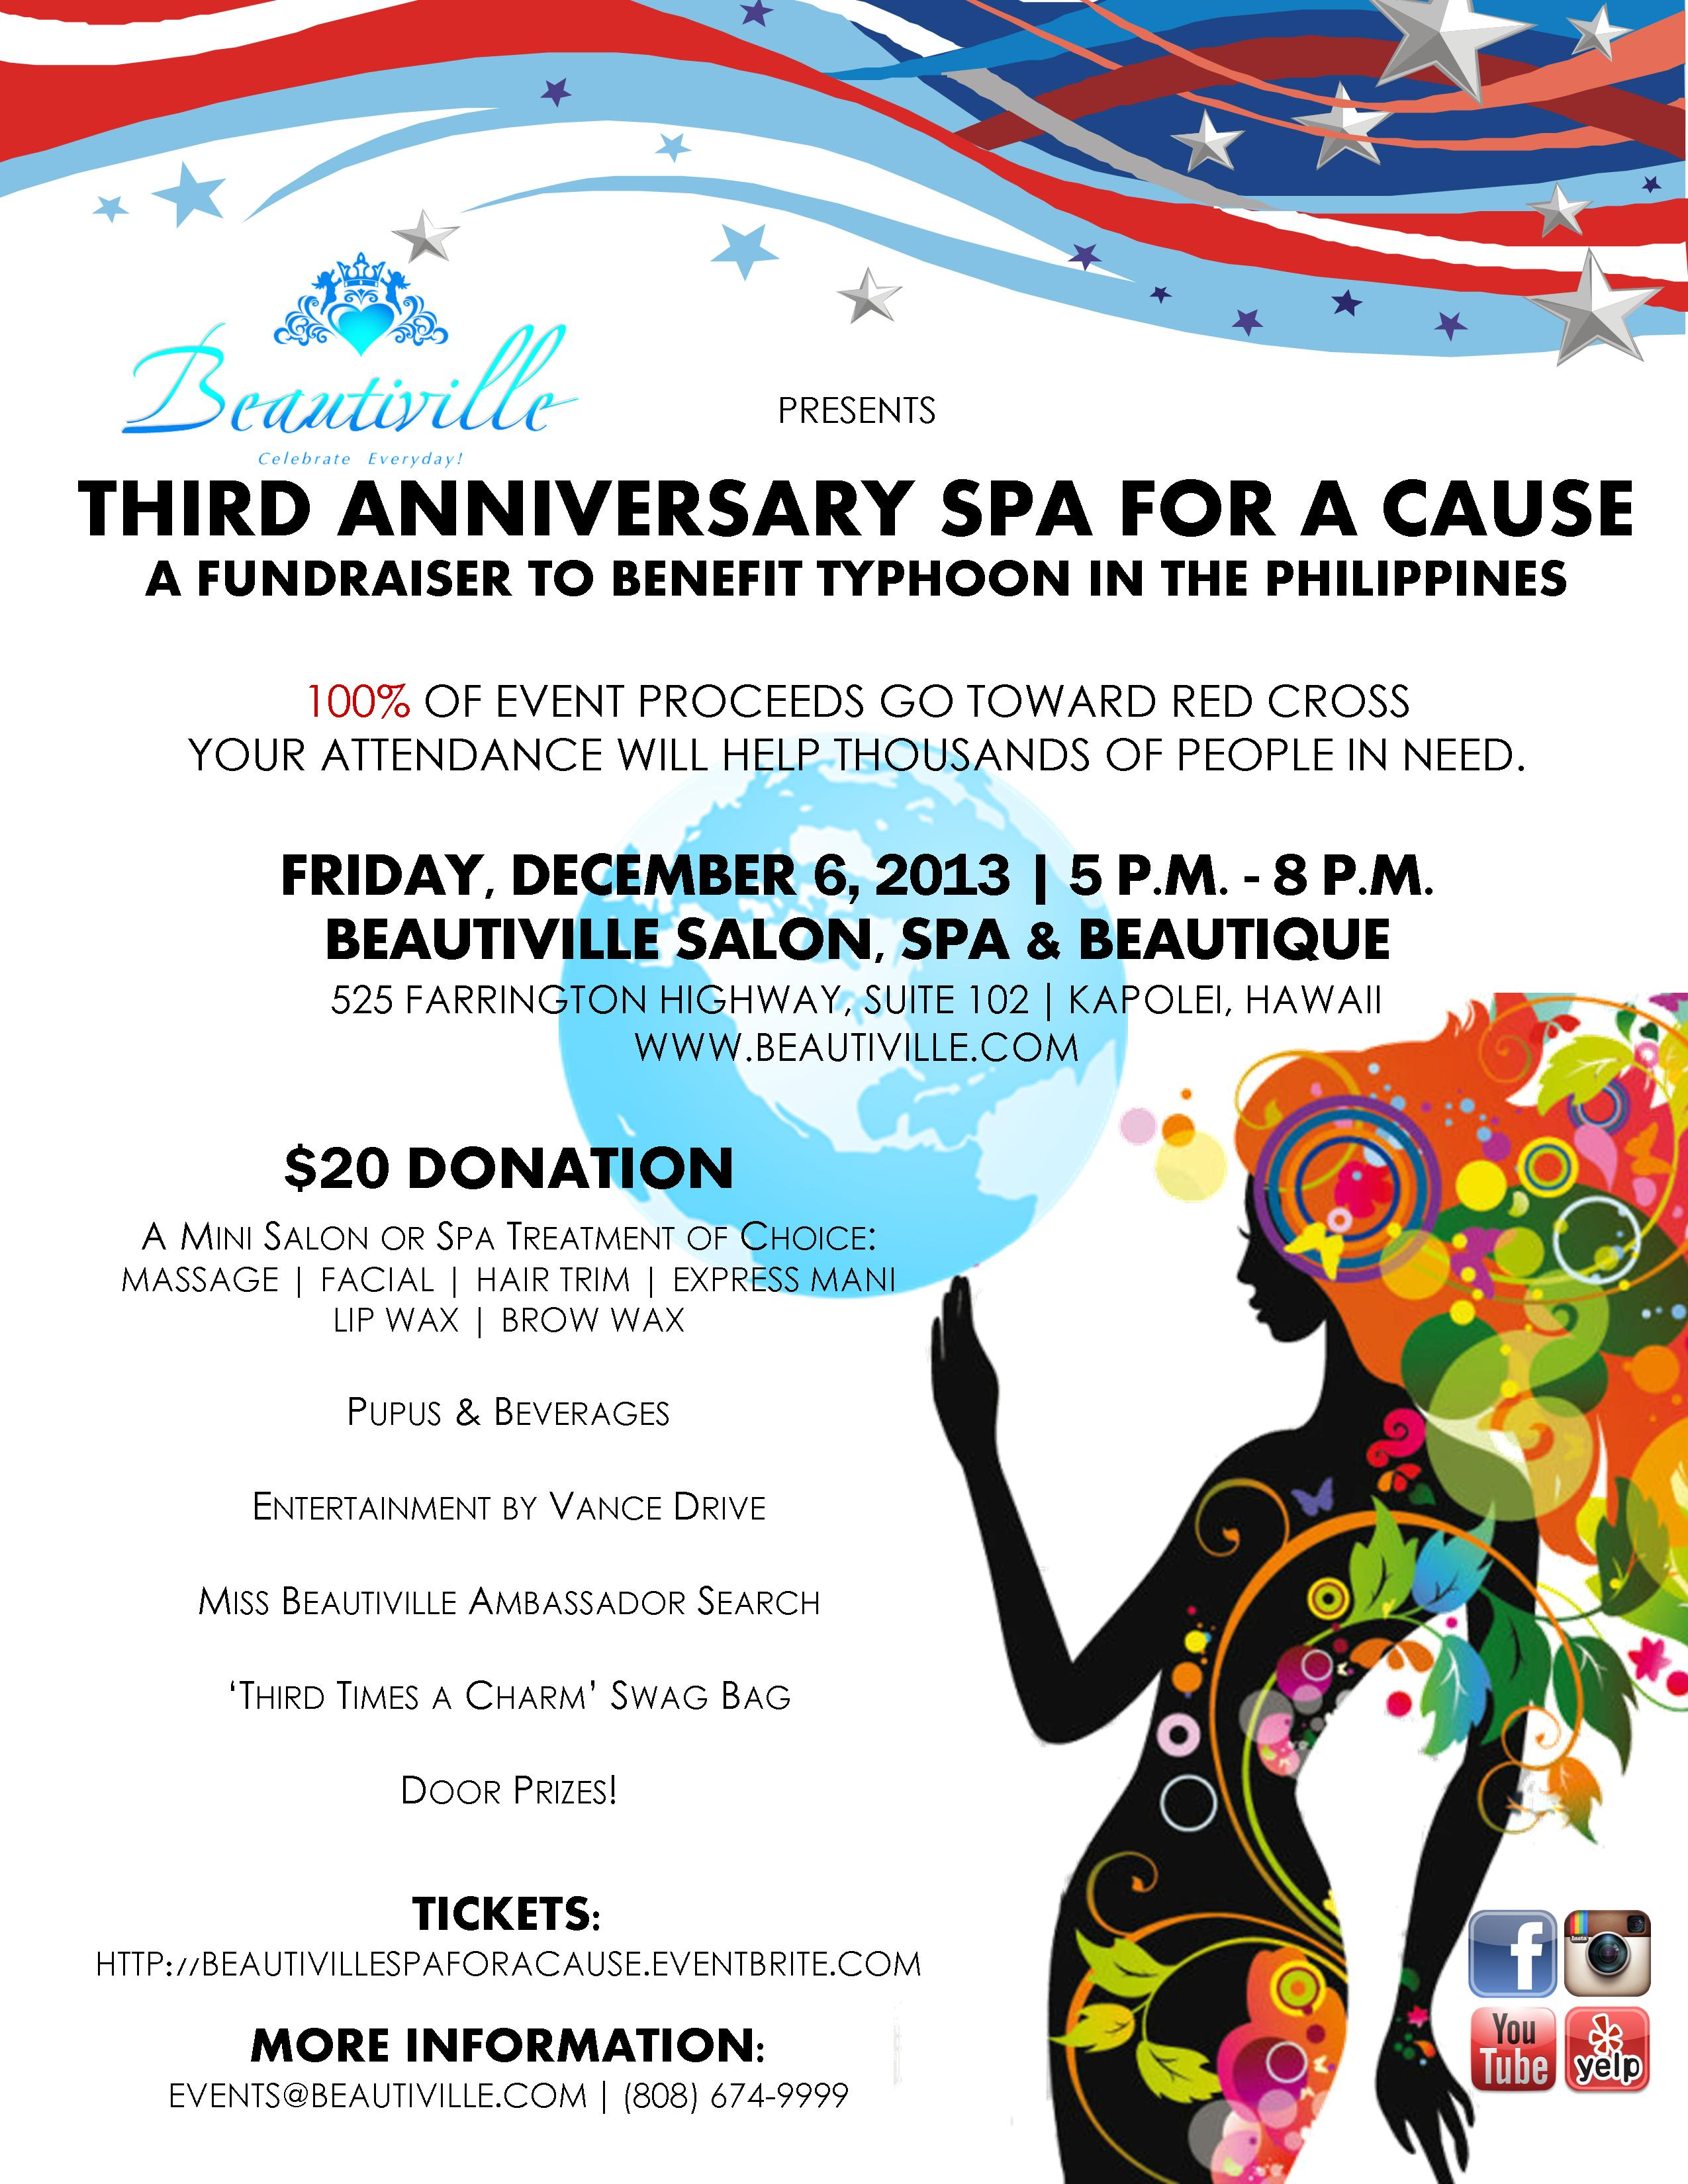 Beautiville Third Anniversary Spa for a Cause Typhoon Philippines Red Cross